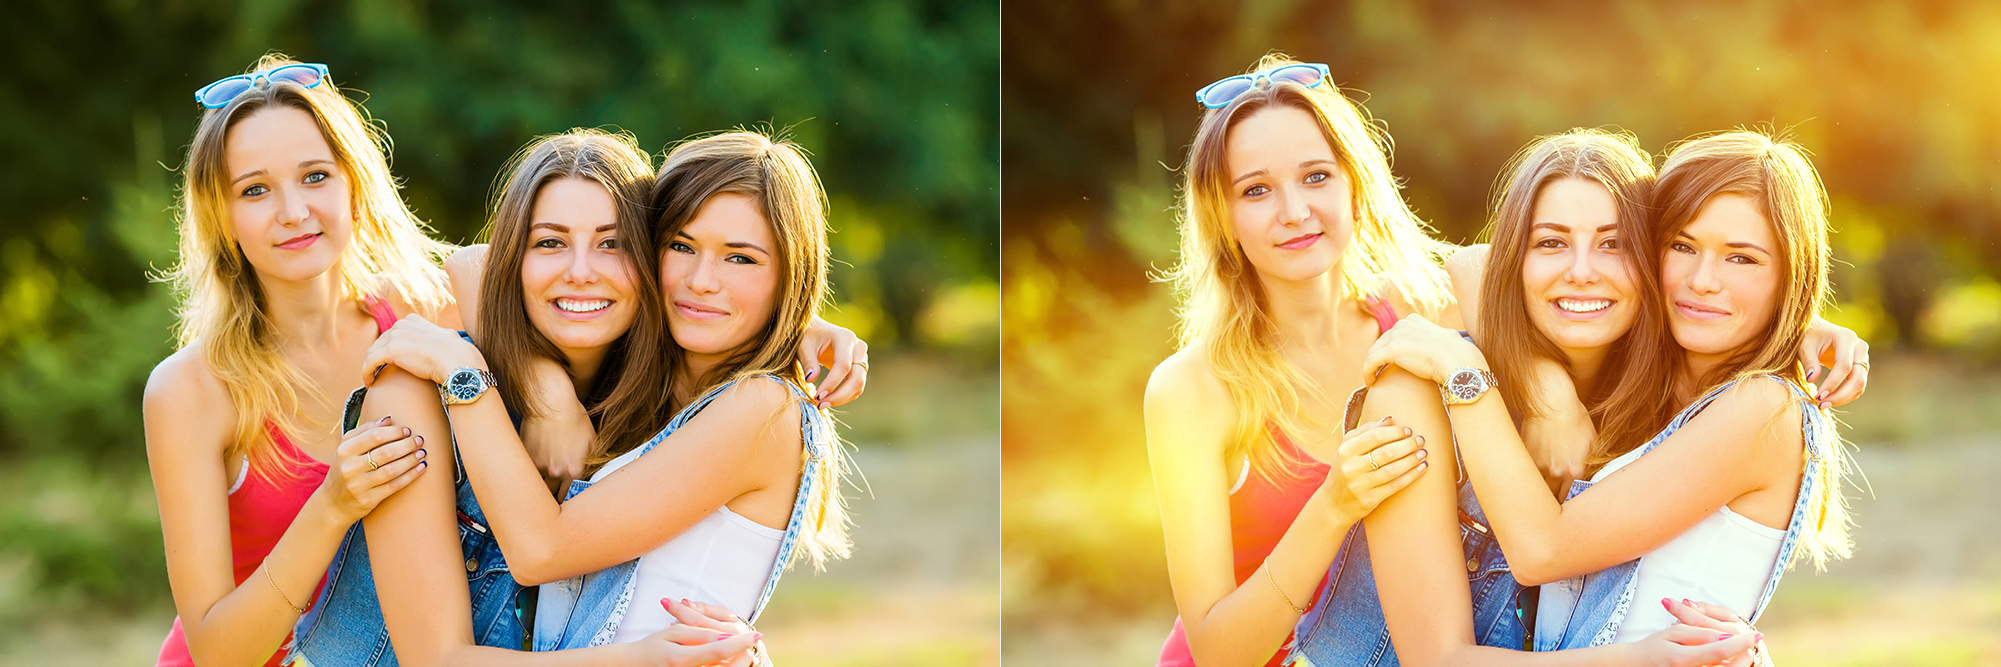 122 Light Leaks Photoshop Actions Collection (Action for photoshop CS5,CS6,CC) example image 2